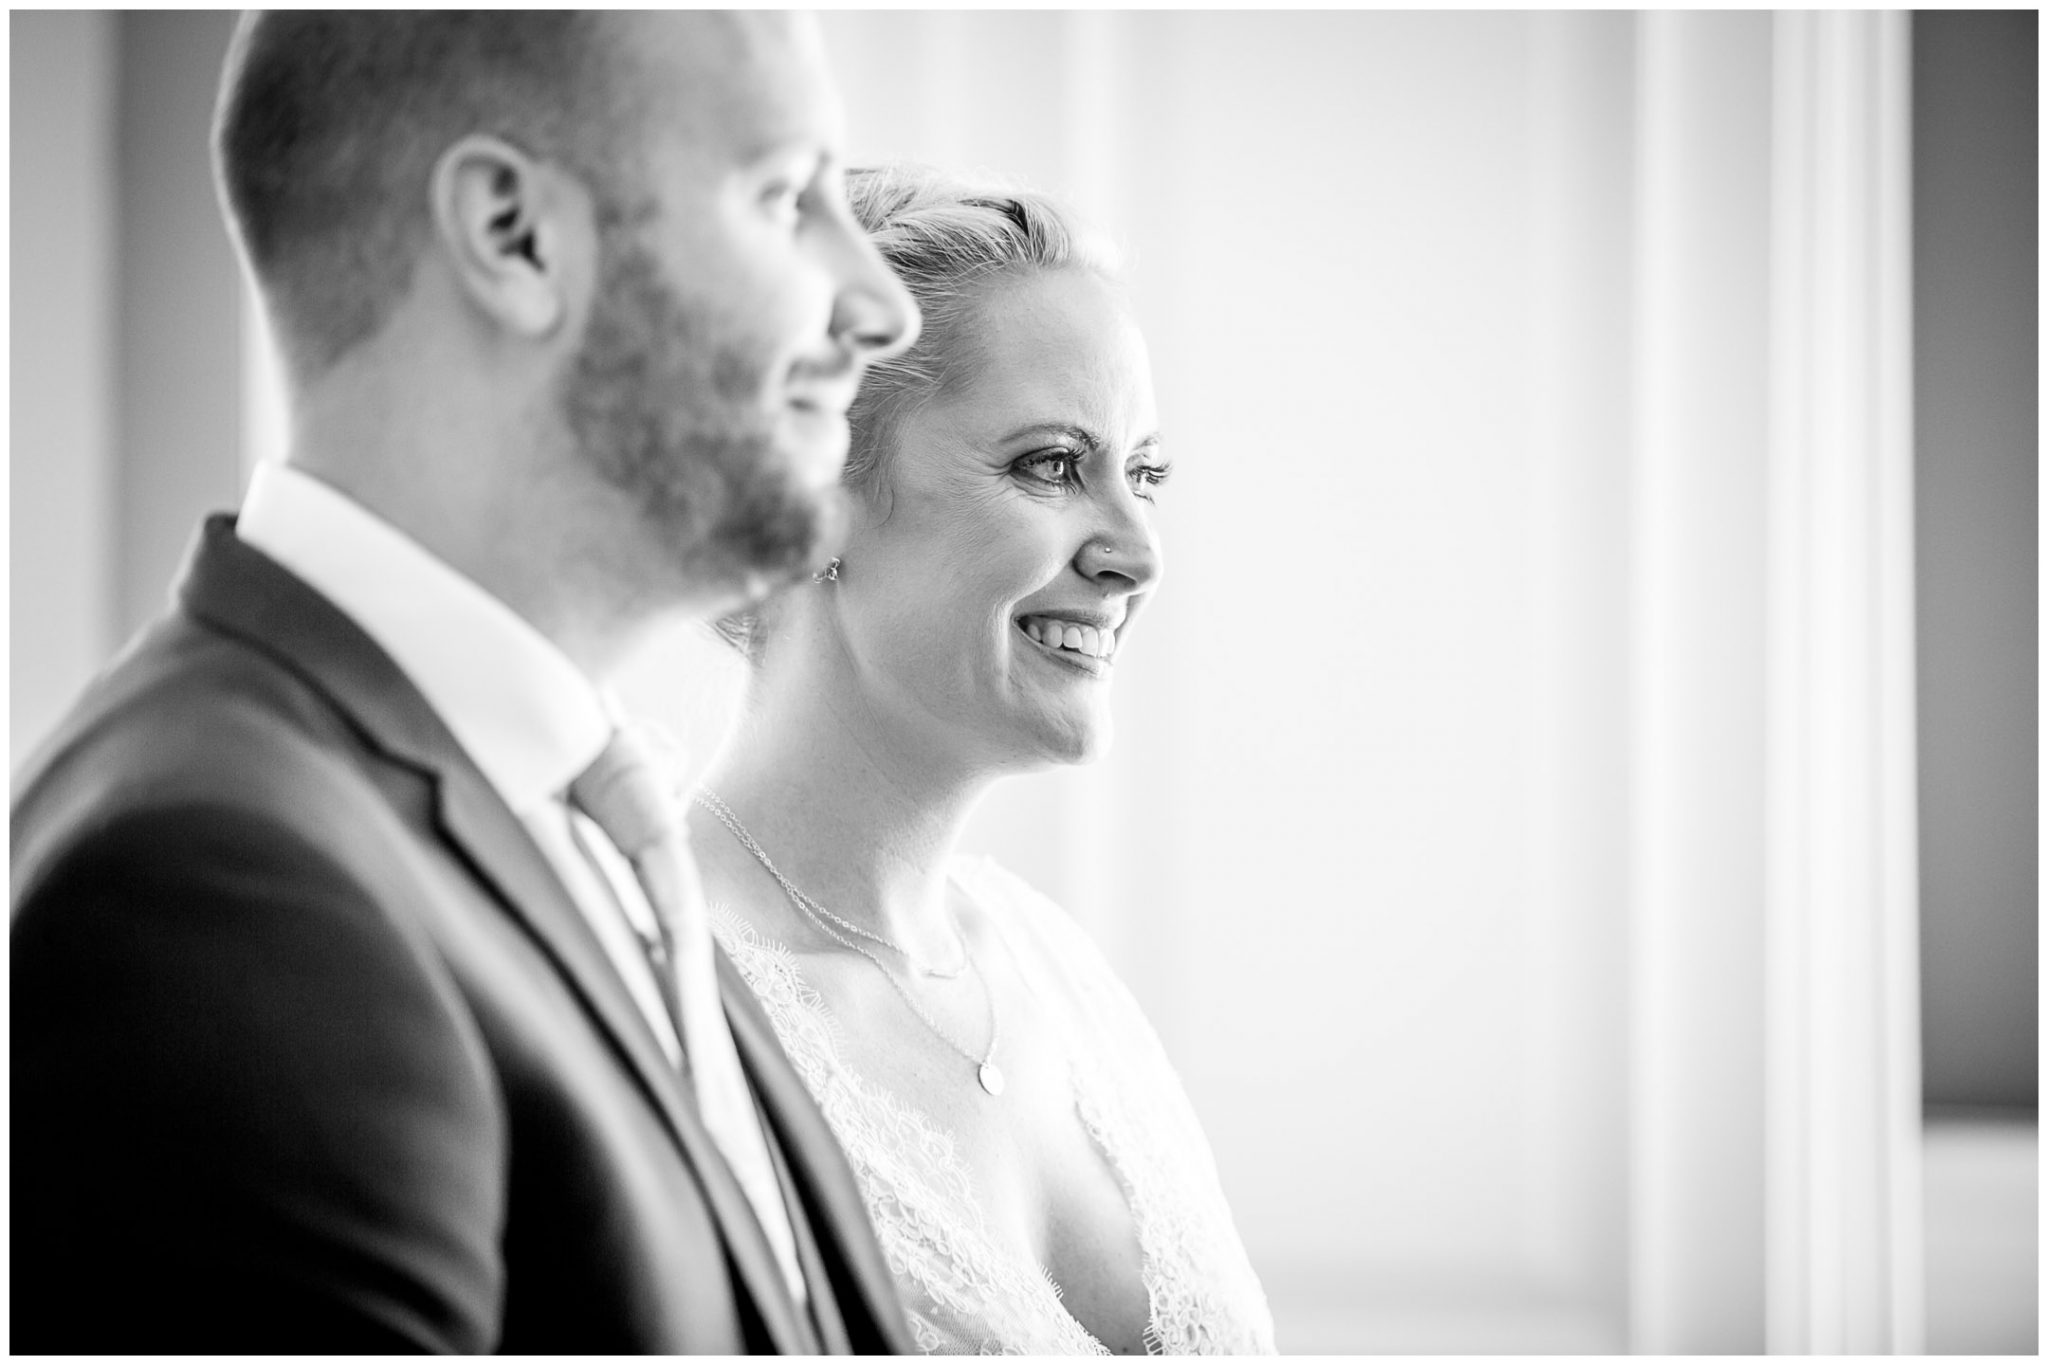 Oakley Hall wedding photography bride smiling during marriage ceremony